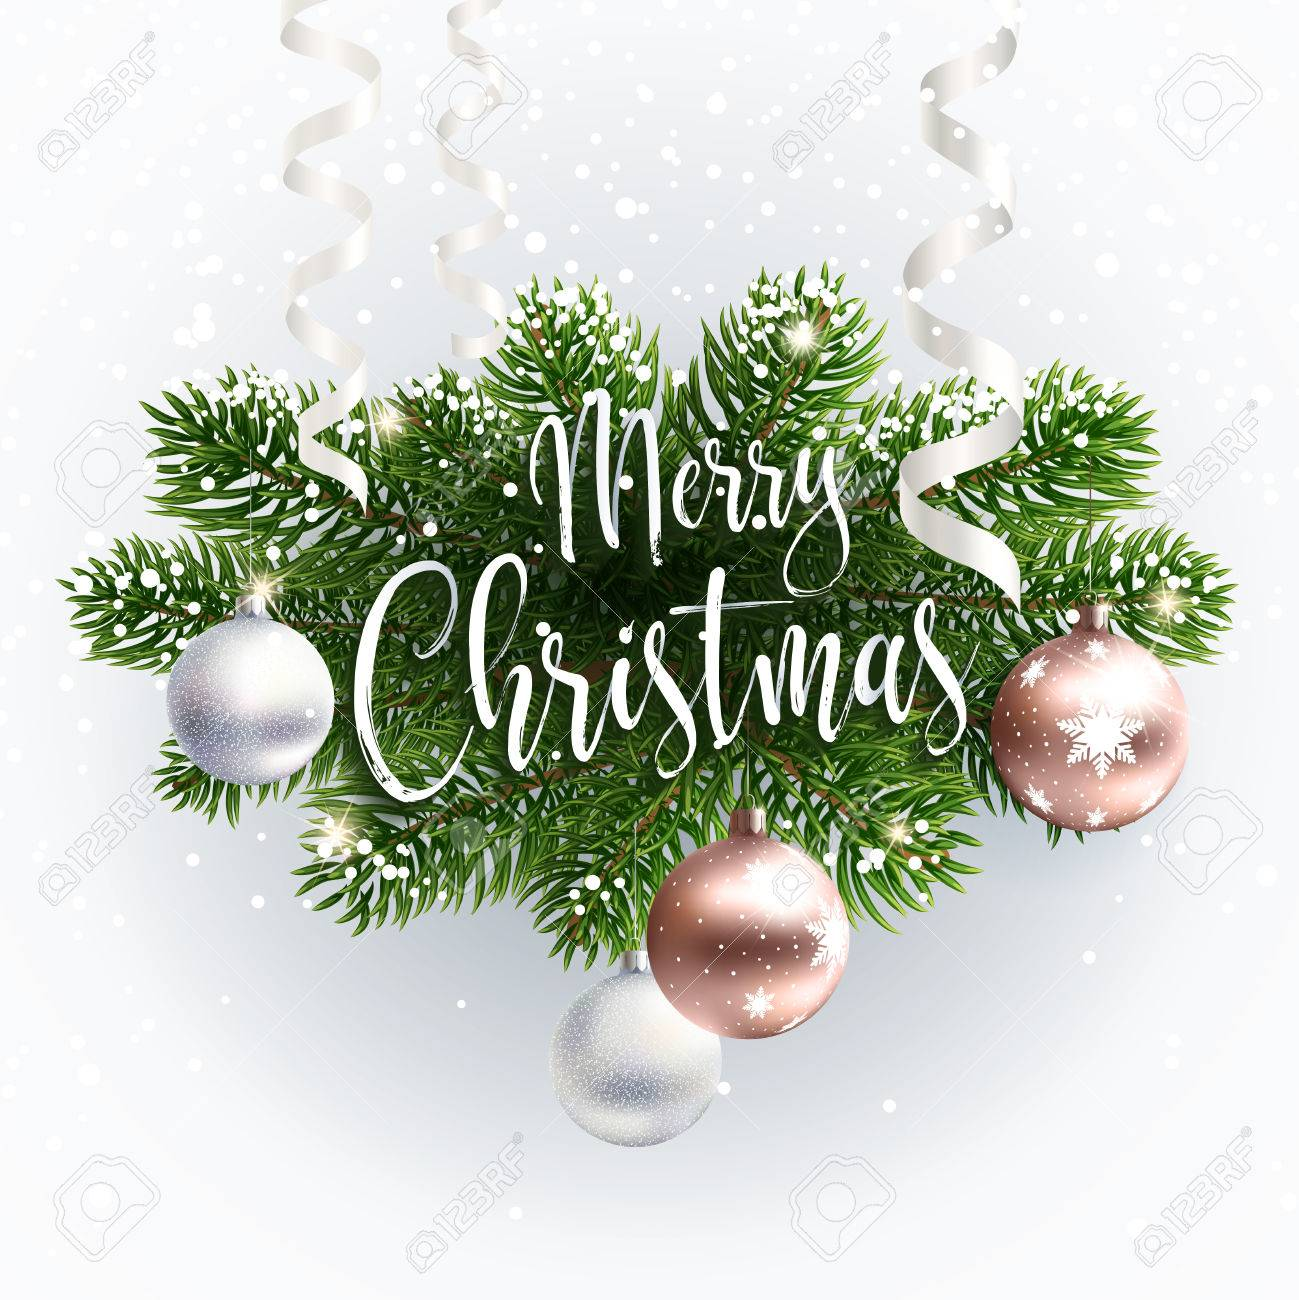 merry christmas inscription greeting white festive background with